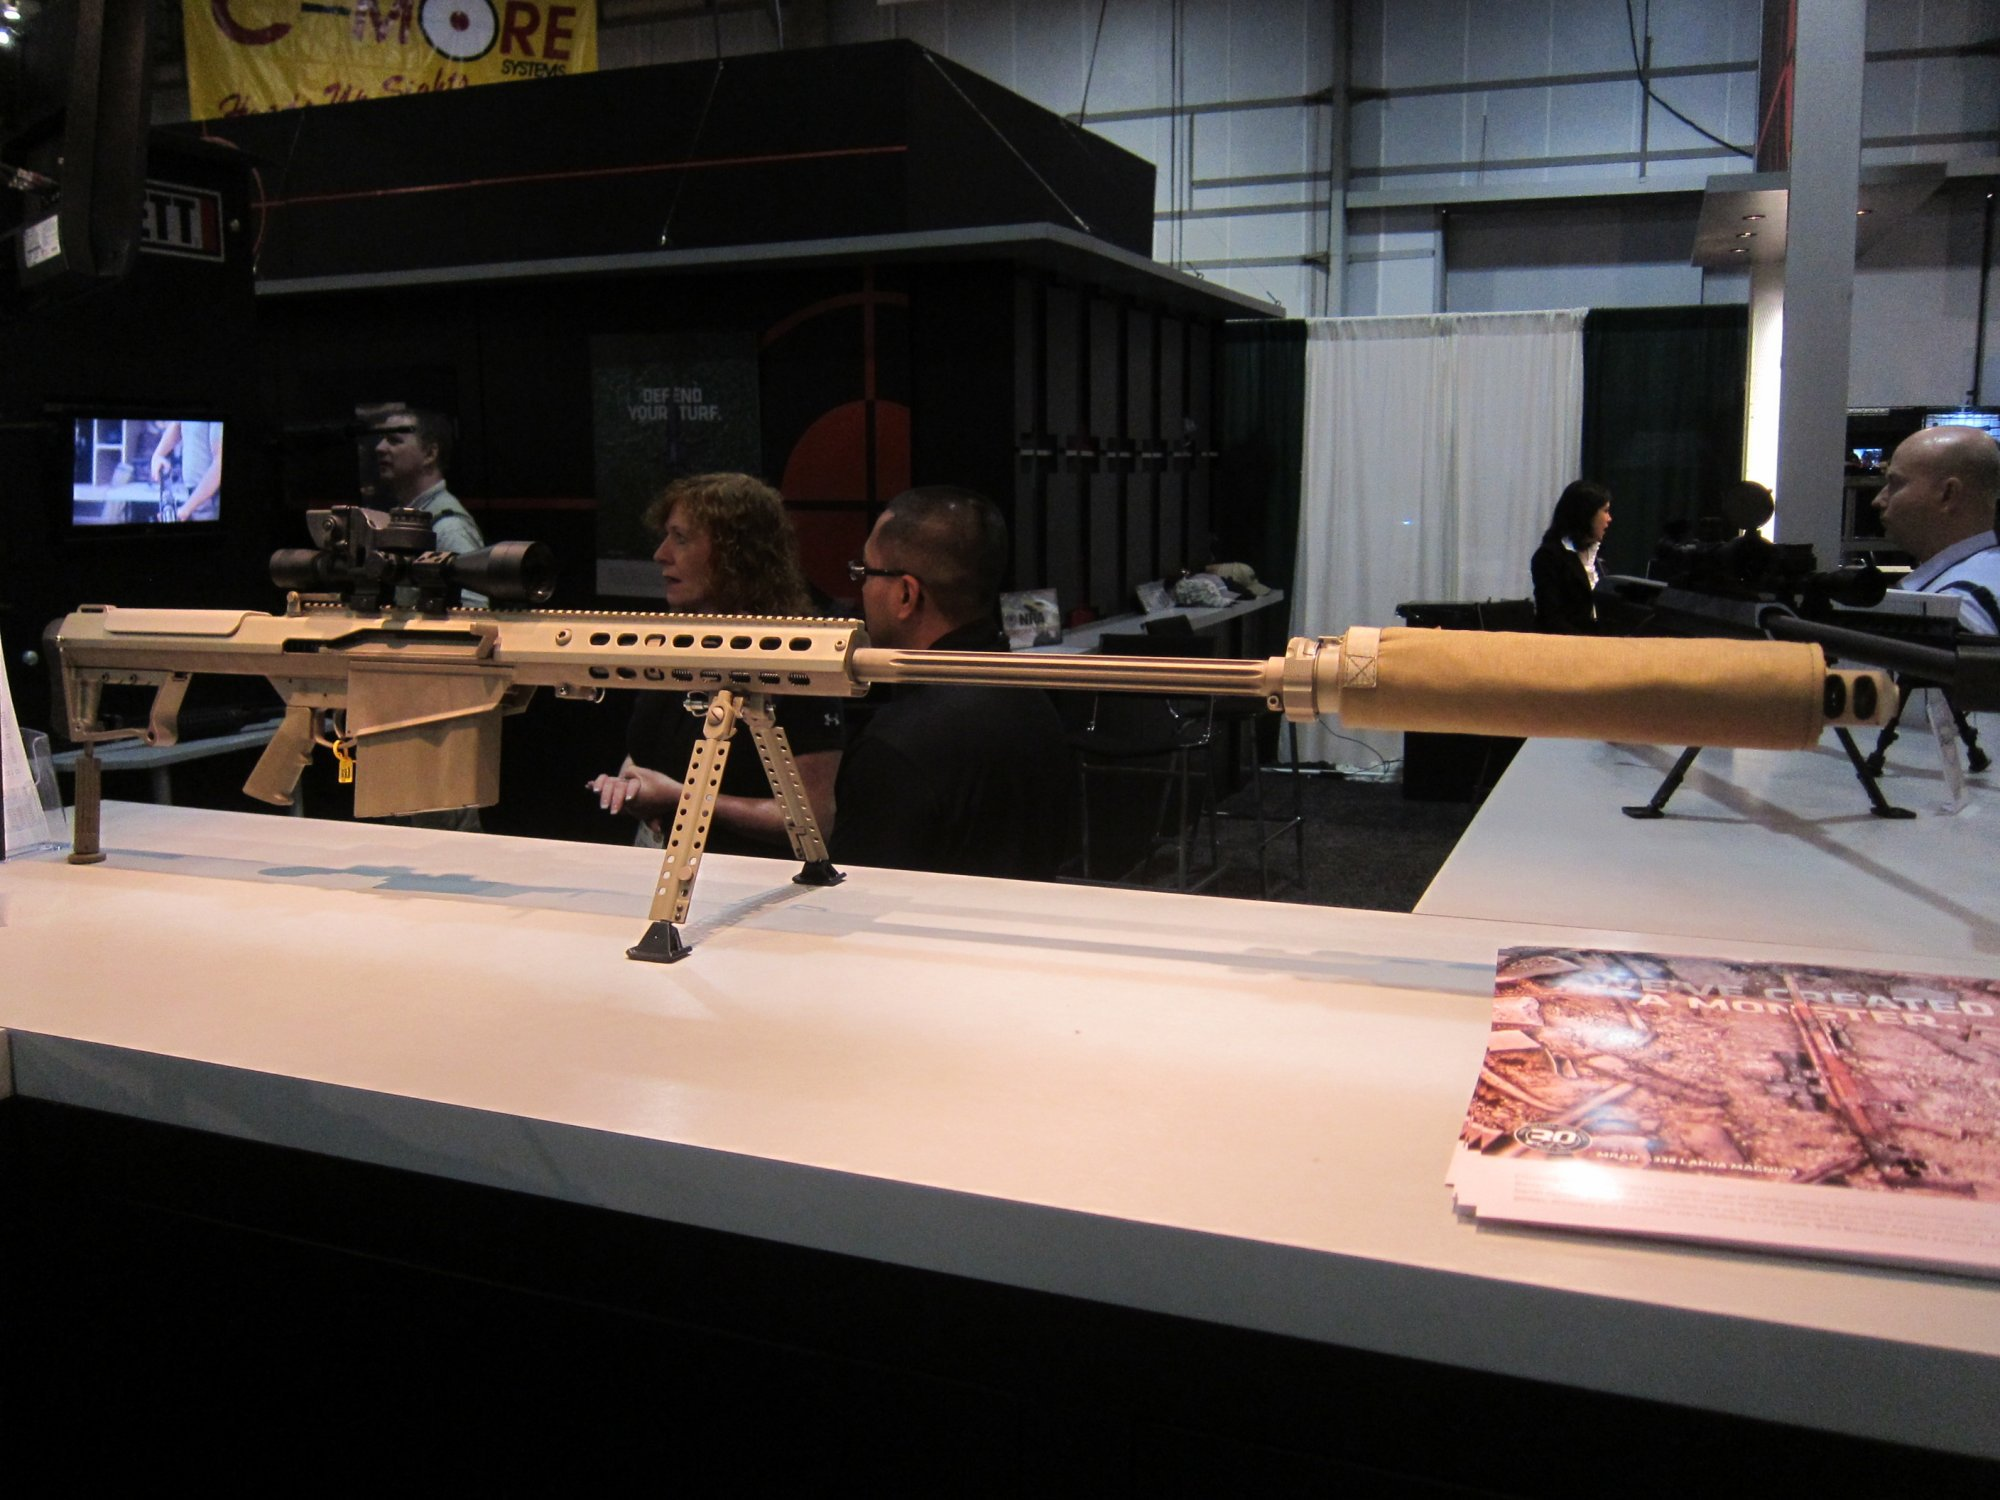 Barrett M107A1 .50 BMG Anti Materiel Rifle Suppressed Silencer Sound Suppressor SHOT Show 2012 DefenseReview.com DR 1 Barrett M107A1 30th Anniversary Edition Semi Auto .50 BMG Anti Materiel Rifle with Robar NP3 Nickel Teflon Coating Inside and Out! (Video!)